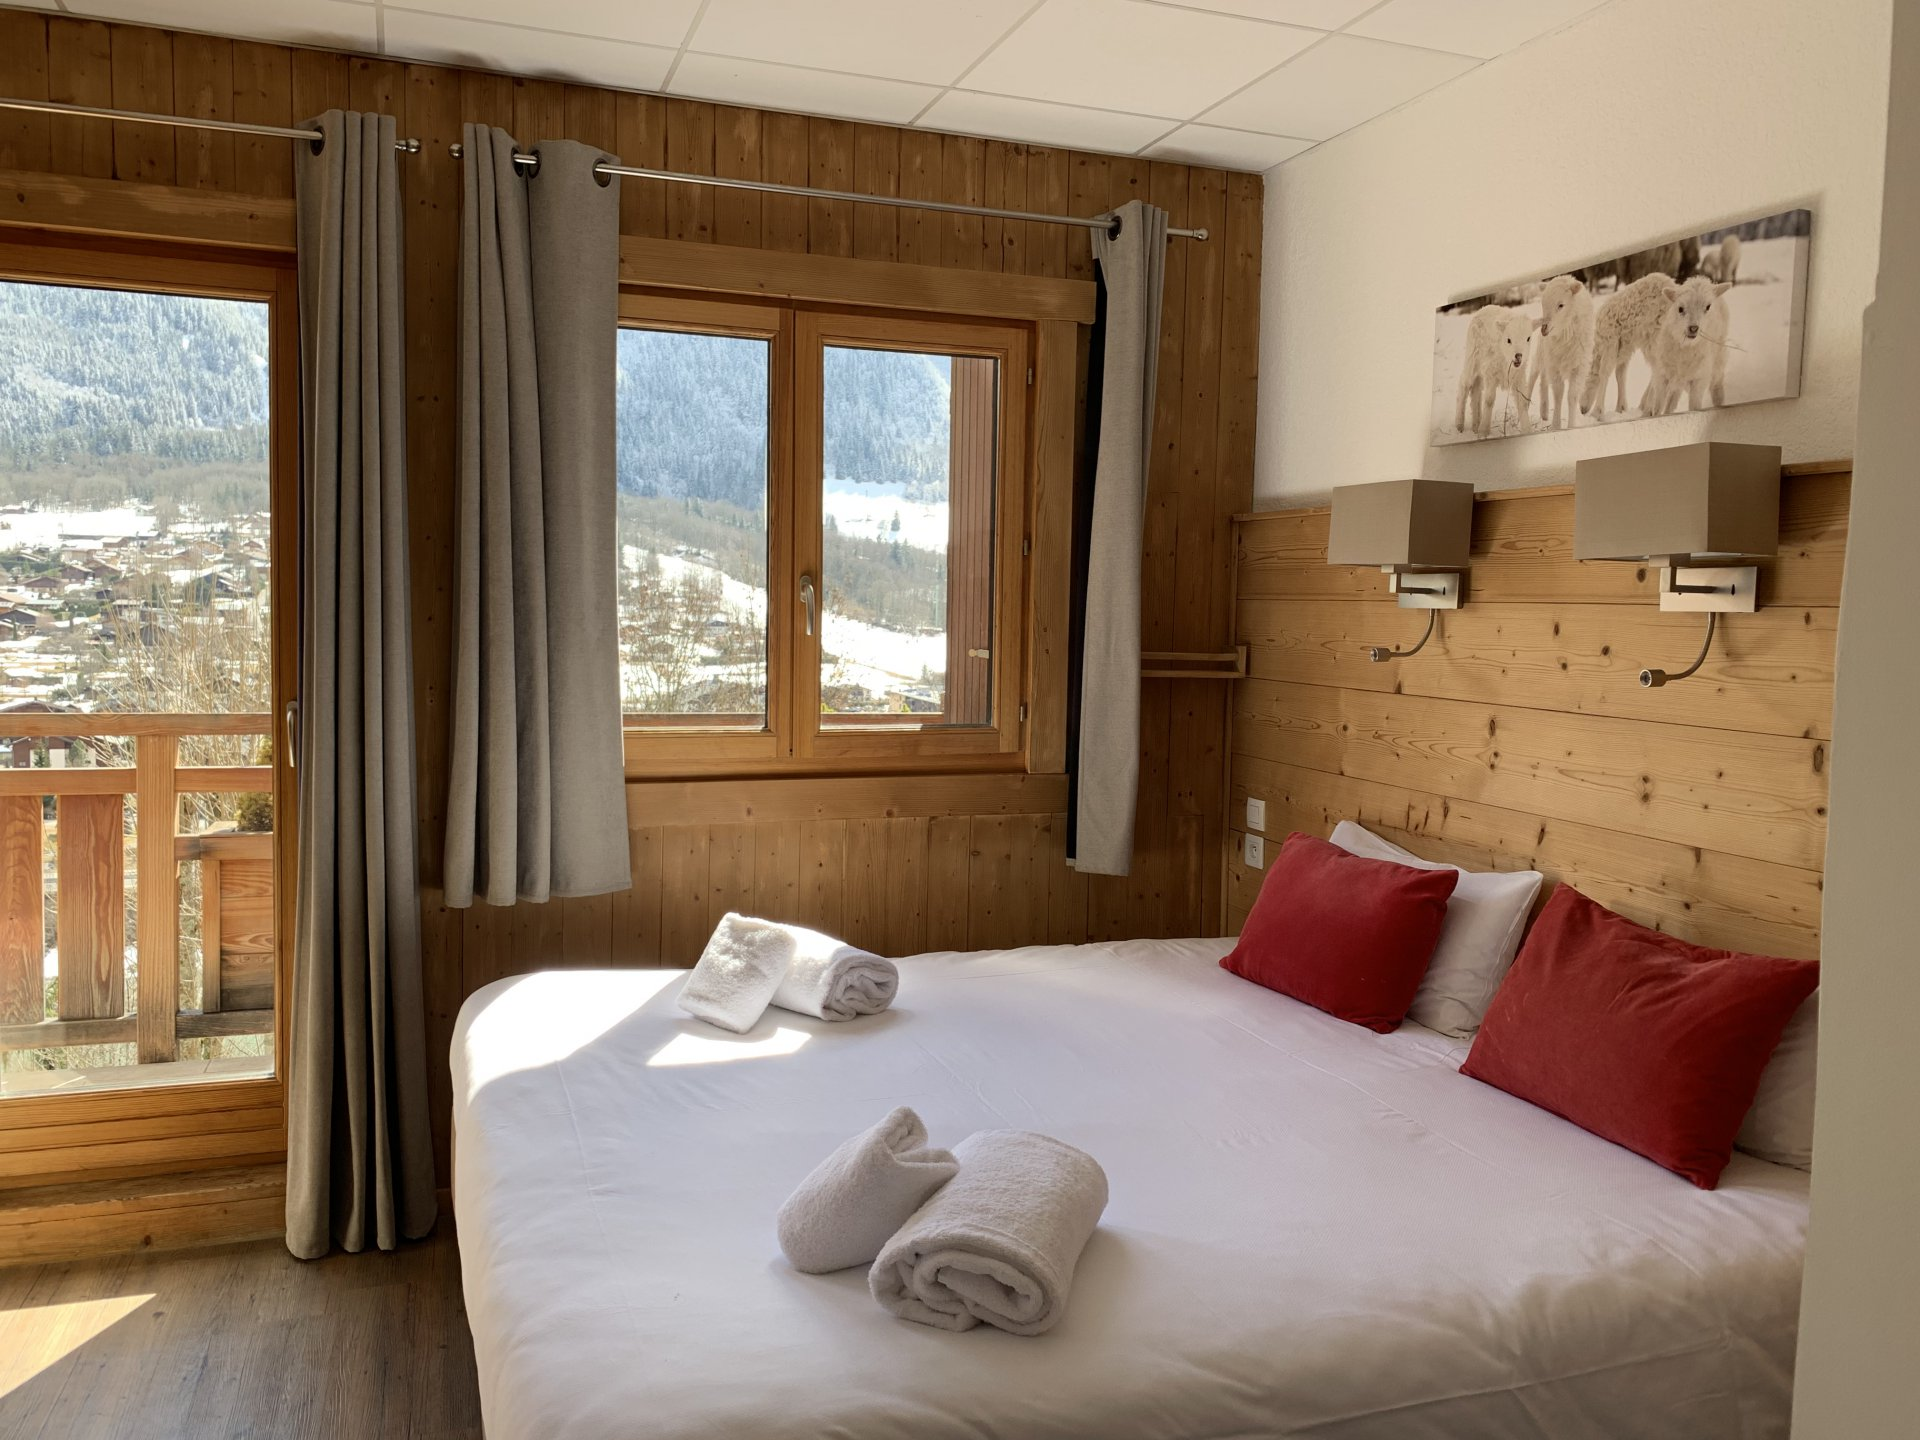 CHAMONIX - CoMMERCIAL WALLS AND COMMERCIAL PROPERTY HOTEL